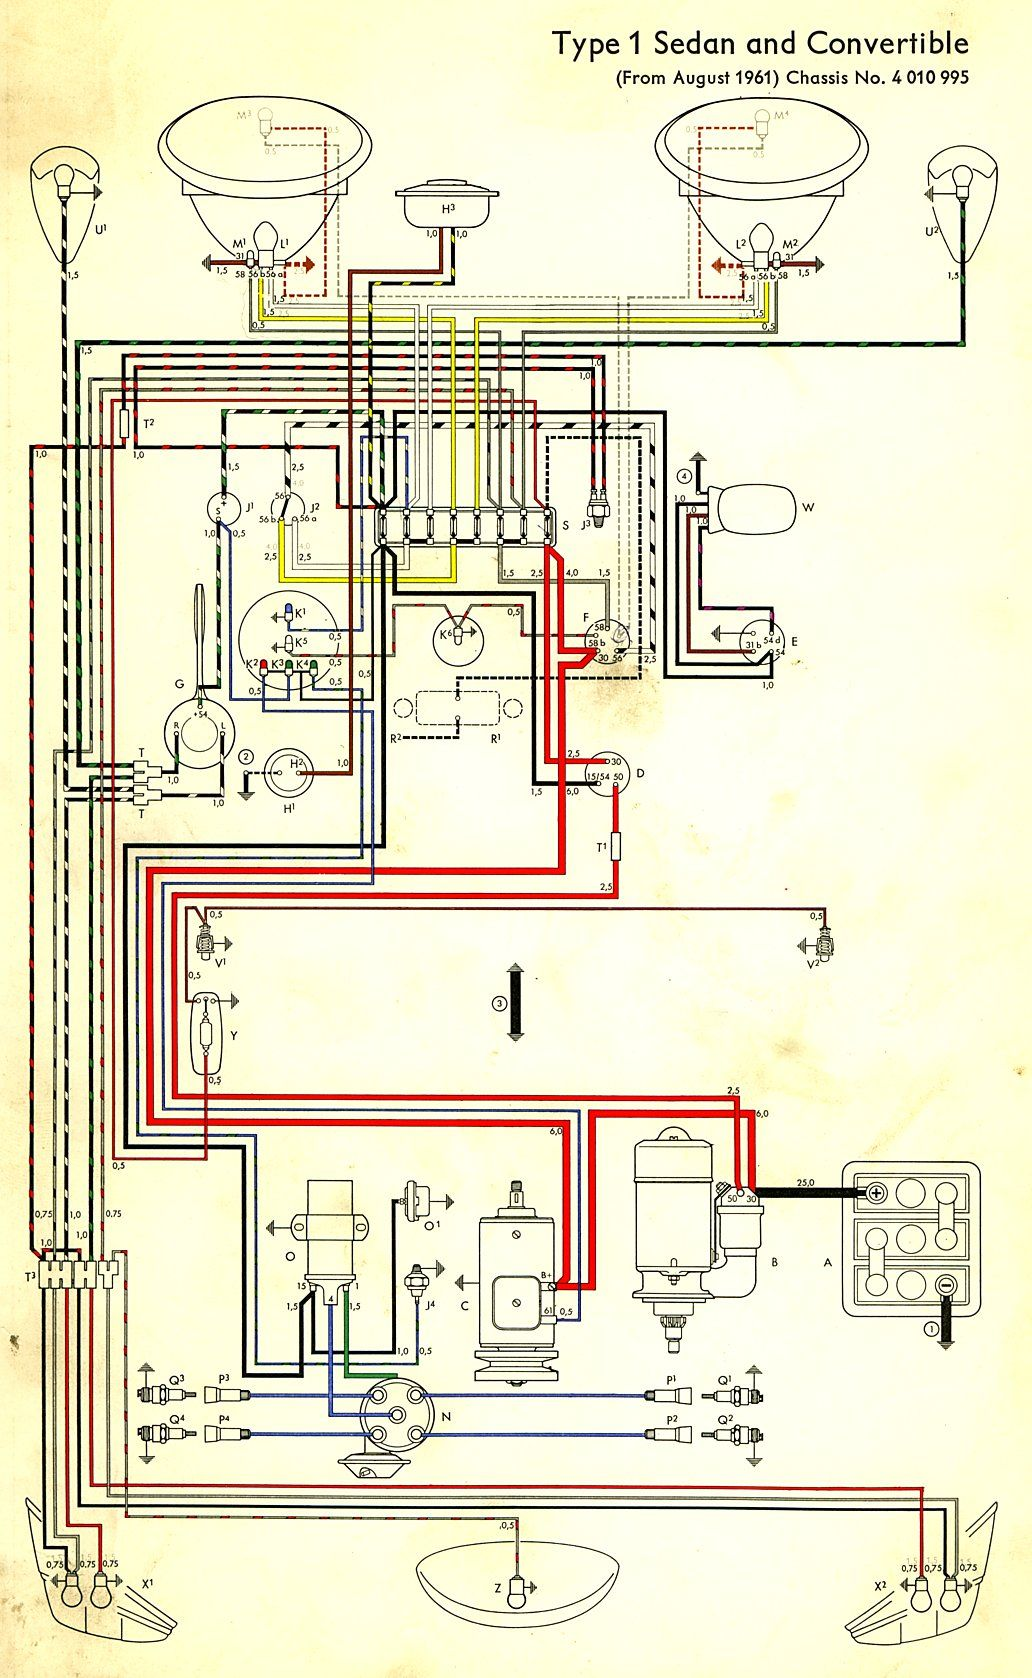 hight resolution of 1966 vw beetle wiring harness wiring diagram inside 1974 vw beetle alternator wiring diagram 1966 vw